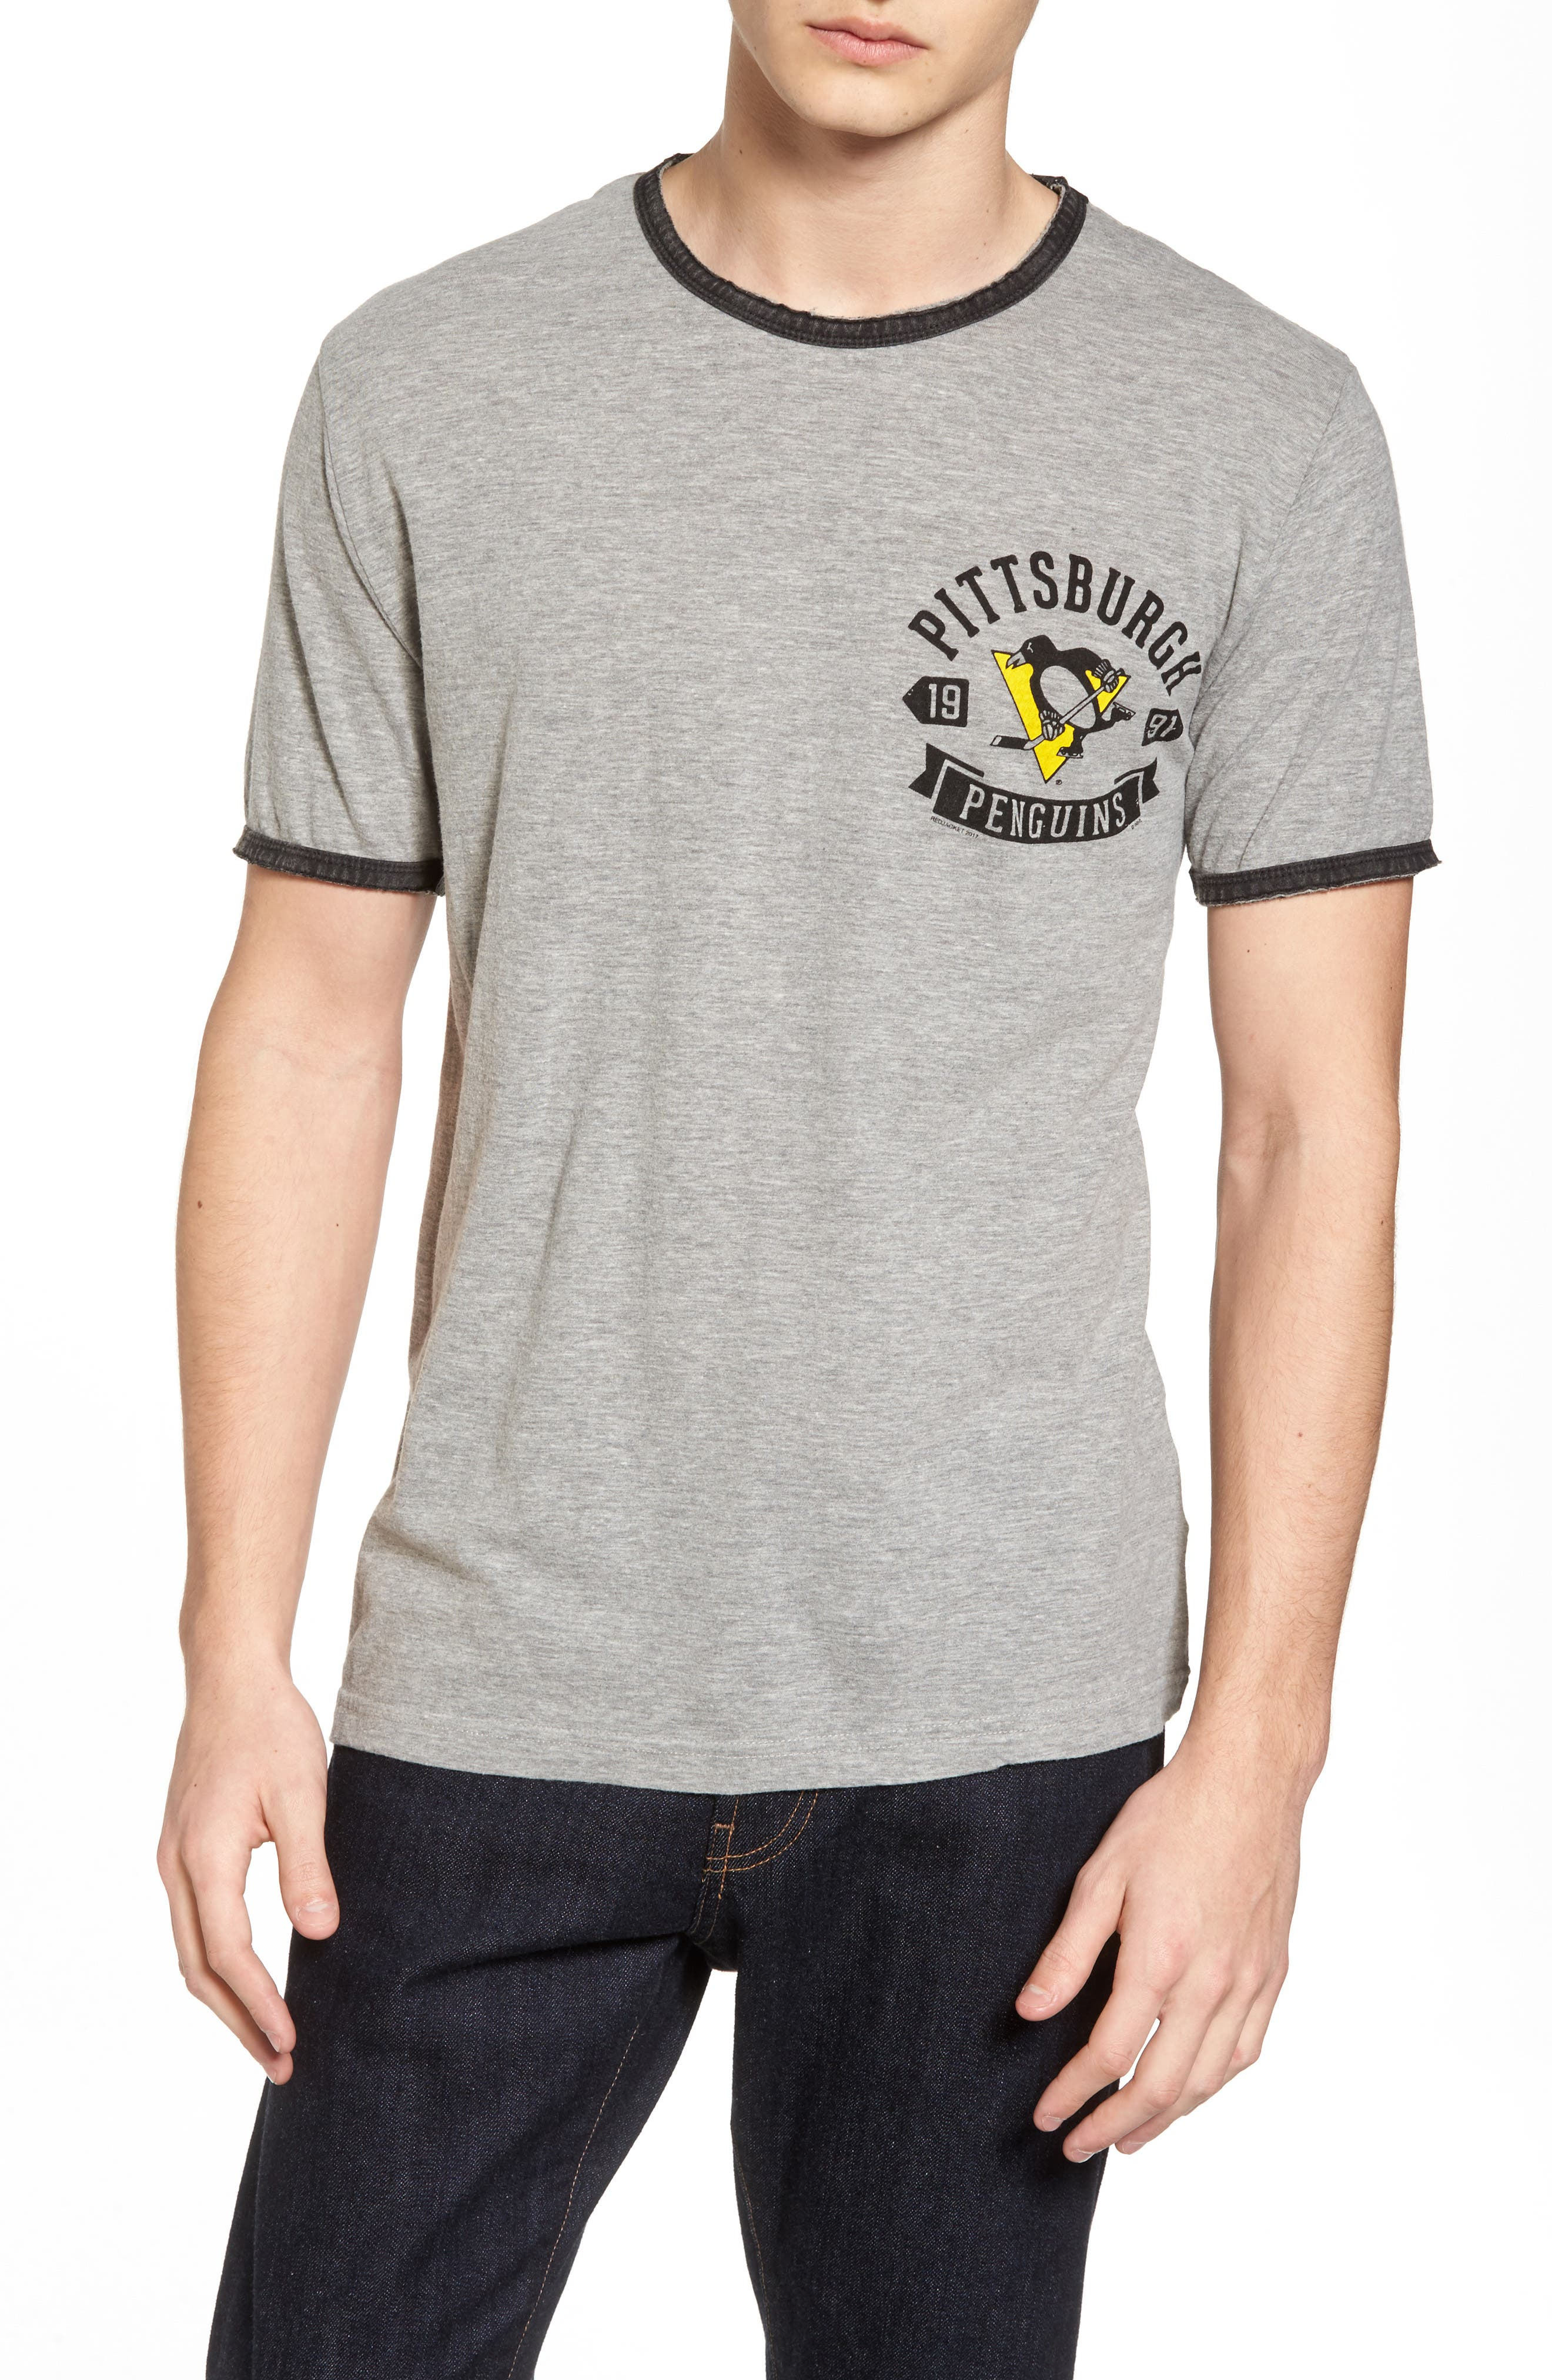 Portage Pittsburgh Penguins Ringer T-Shirt,                             Main thumbnail 1, color,                             Heather Grey-Black